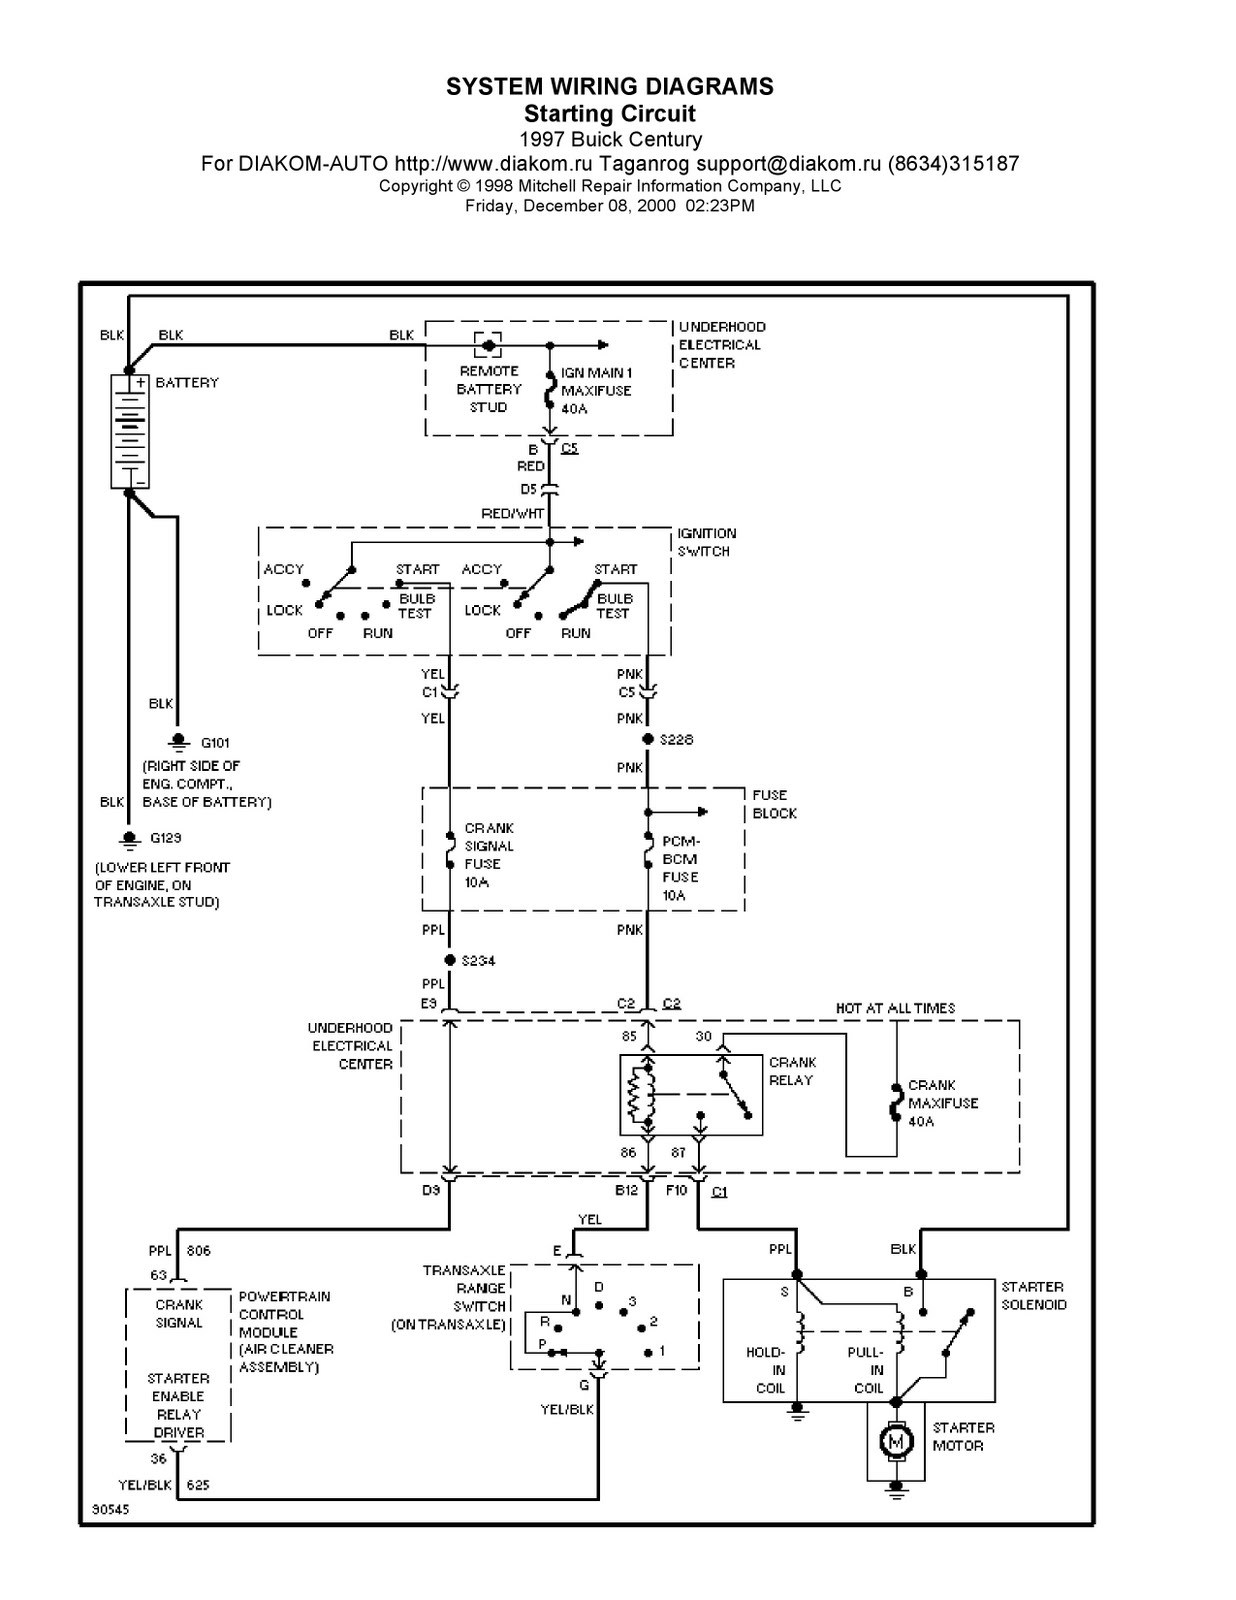 1997 buick lesabre radio wiring diagram relay wire v manual century system